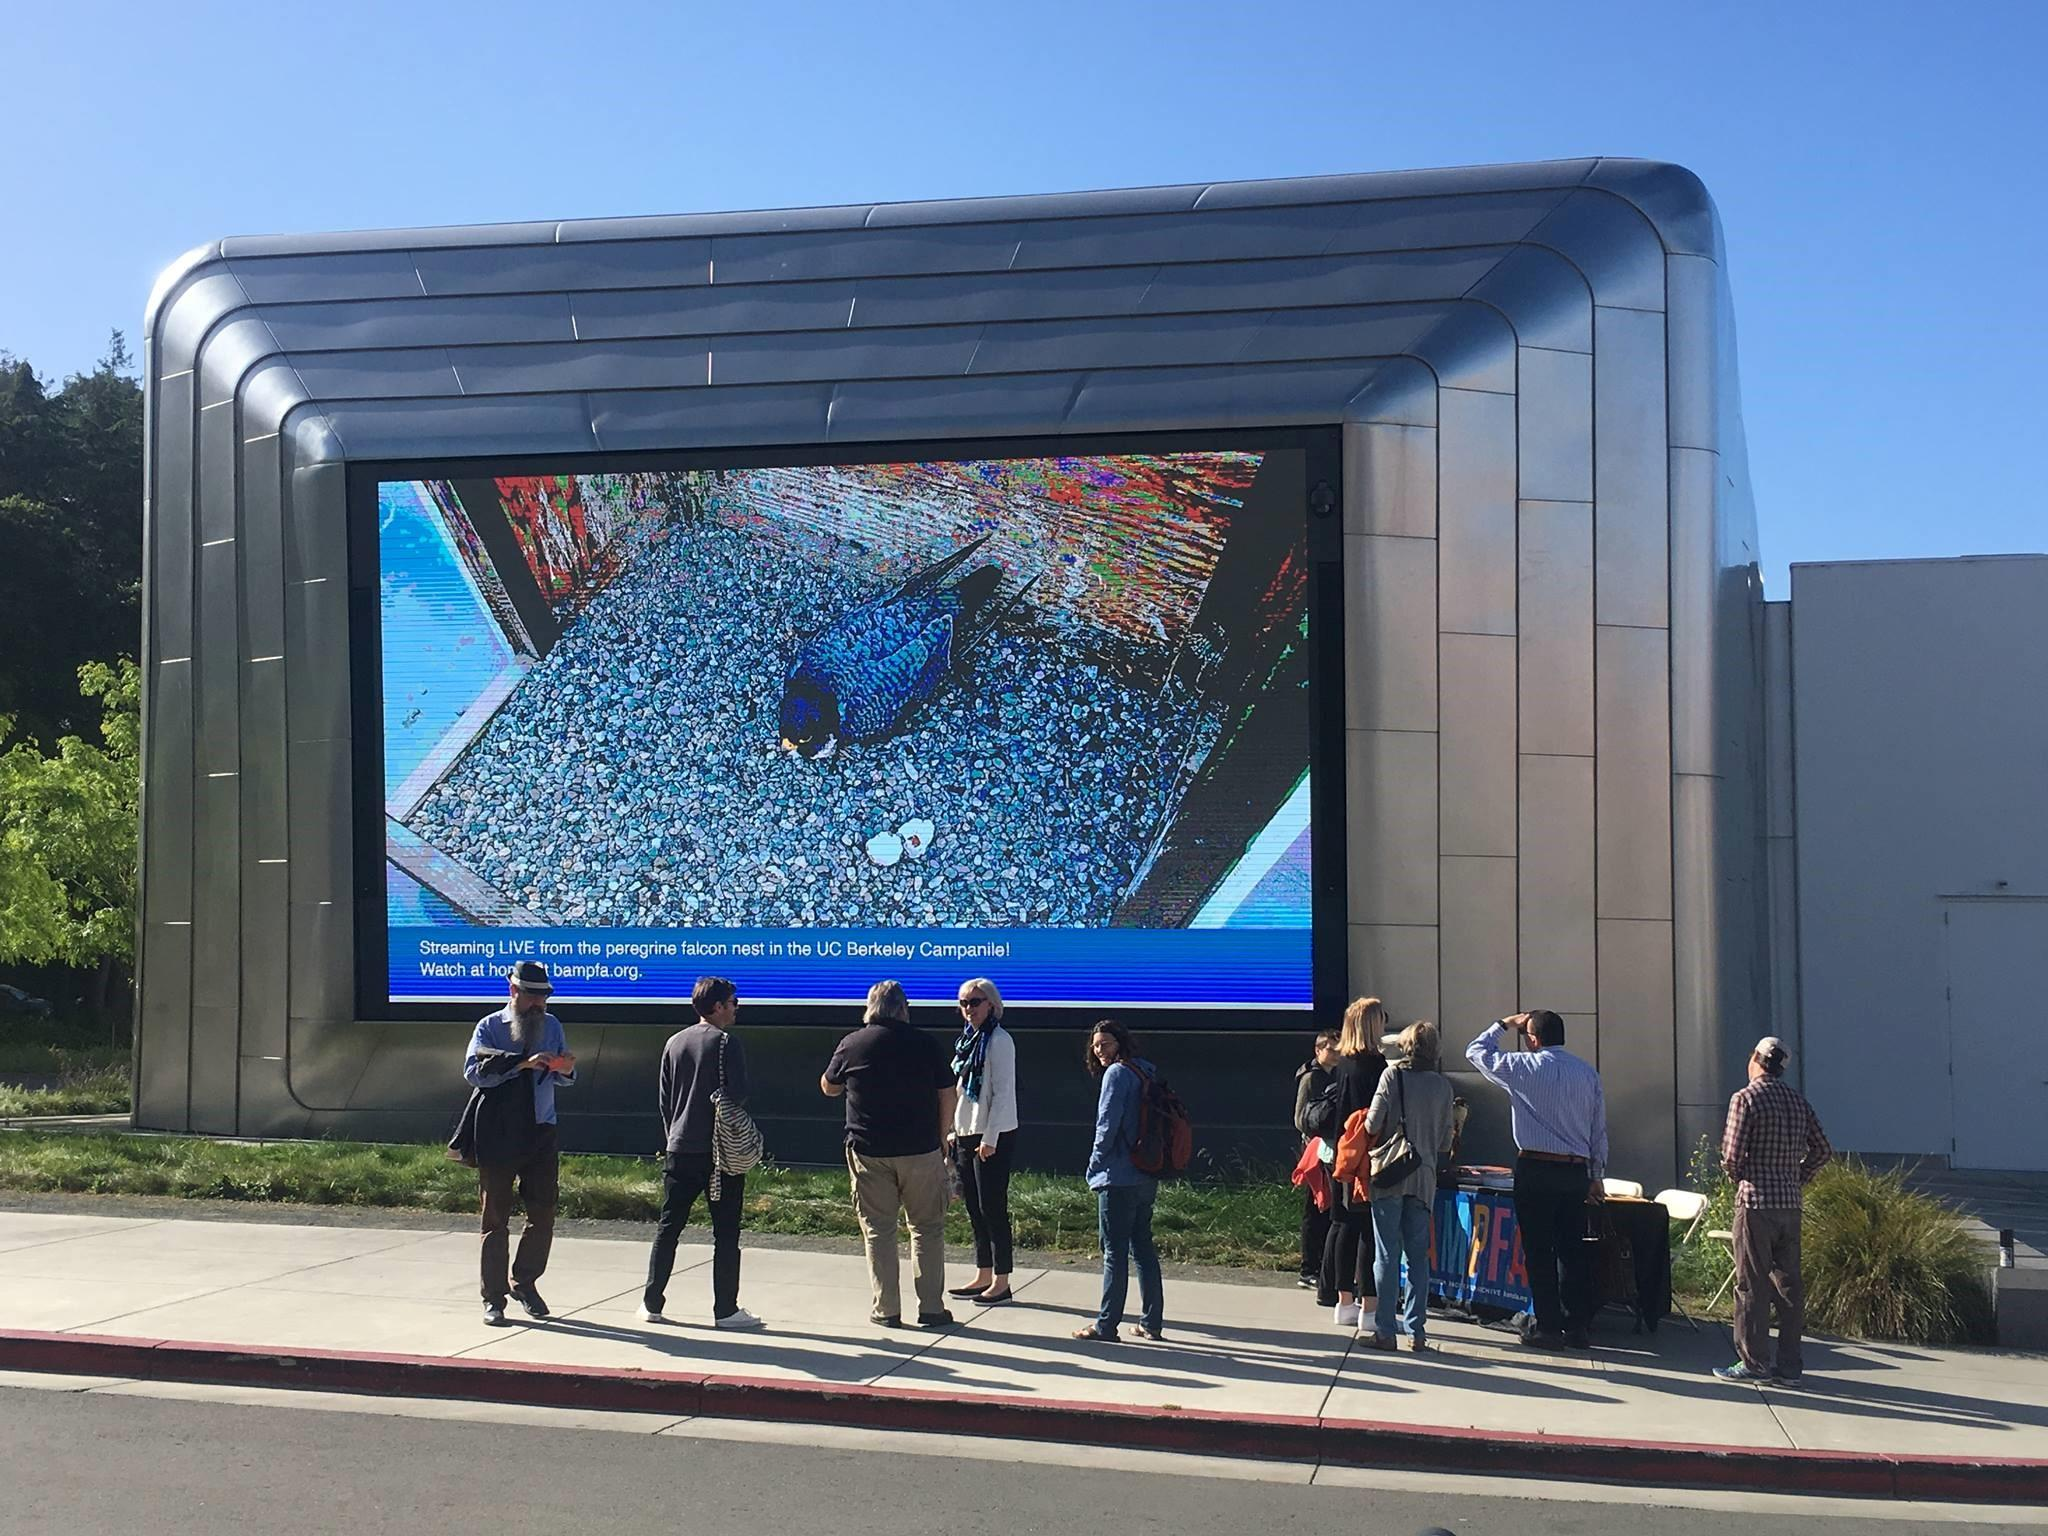 Onlookers watch a full screen livestream of Annie, Grinnell, and their newly hatched Peregrine Falcon chicks on BAMFA's (UC Berkeley Art Museum and Pacific Film Archive) outdoor video screen on April 25, 2019.